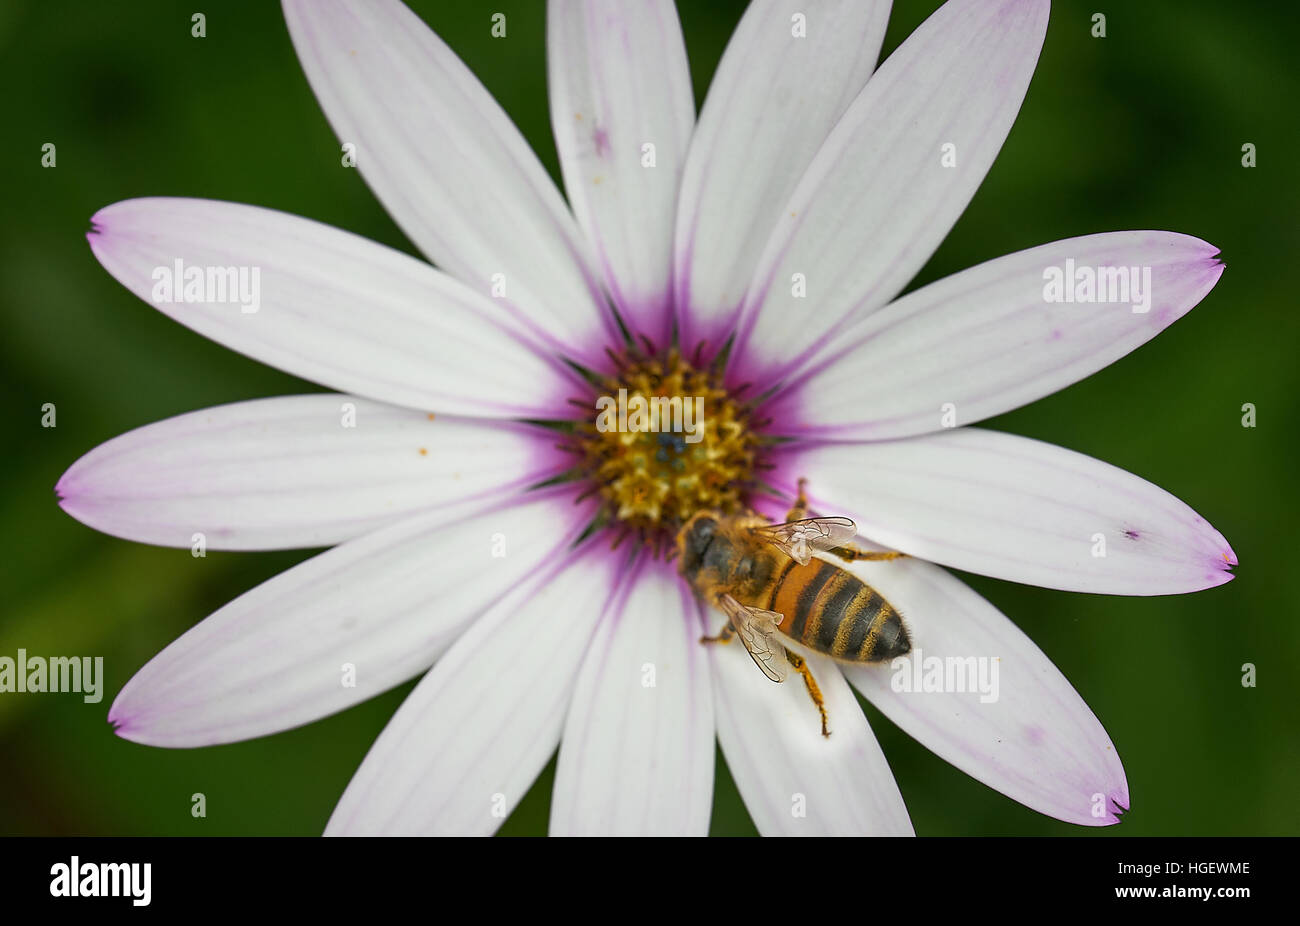 Daisy Like Flower Stock Photos Daisy Like Flower Stock Images Alamy